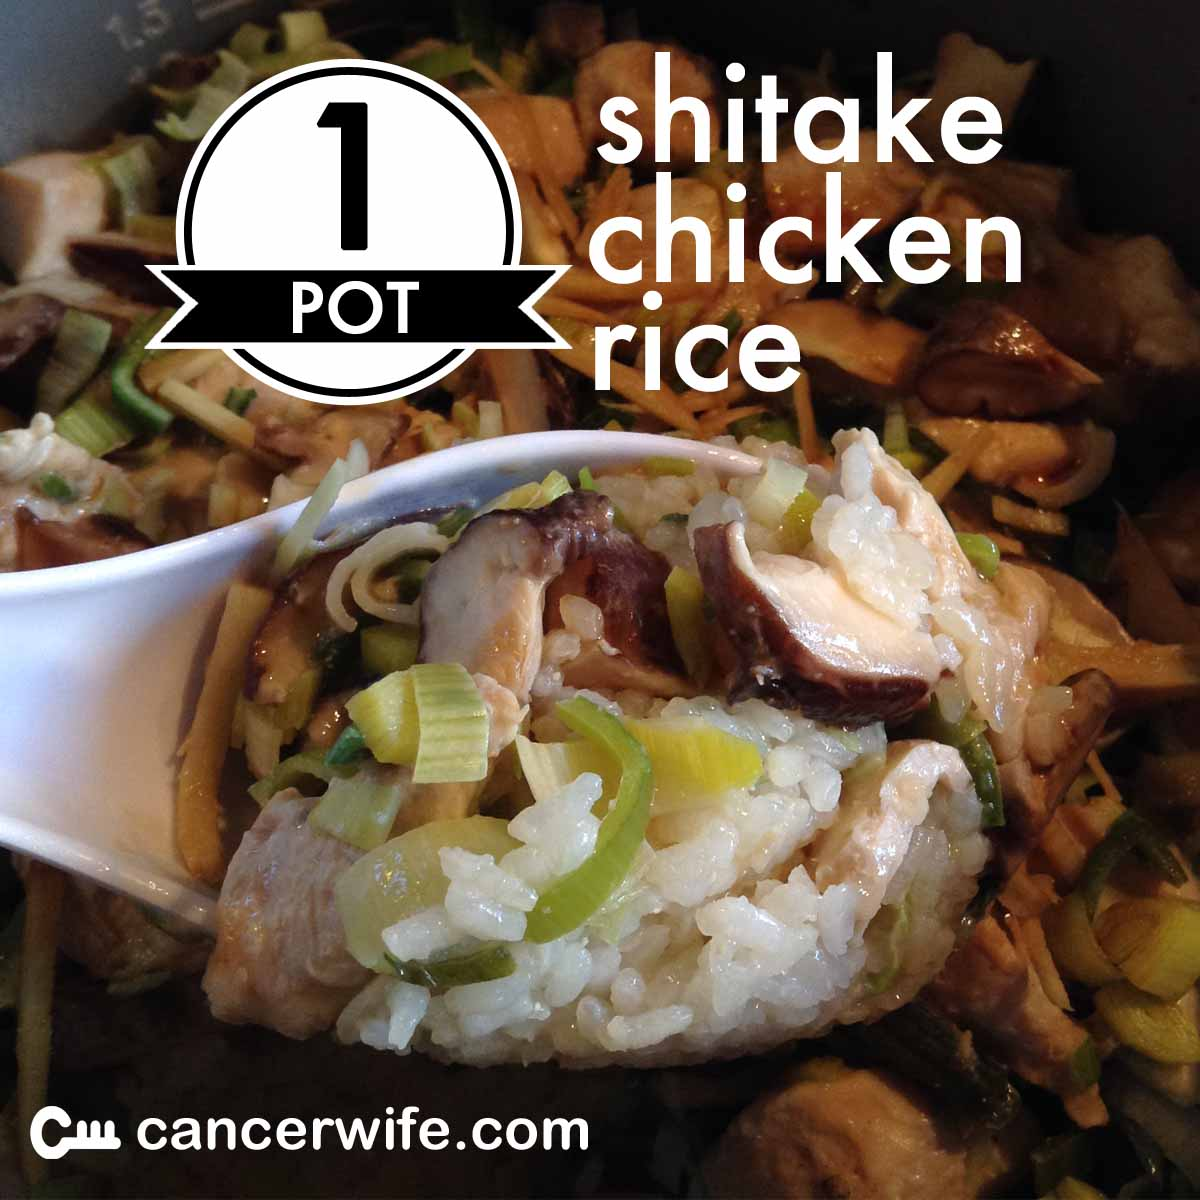 One Pot Shitake Chicken Rice Recipe